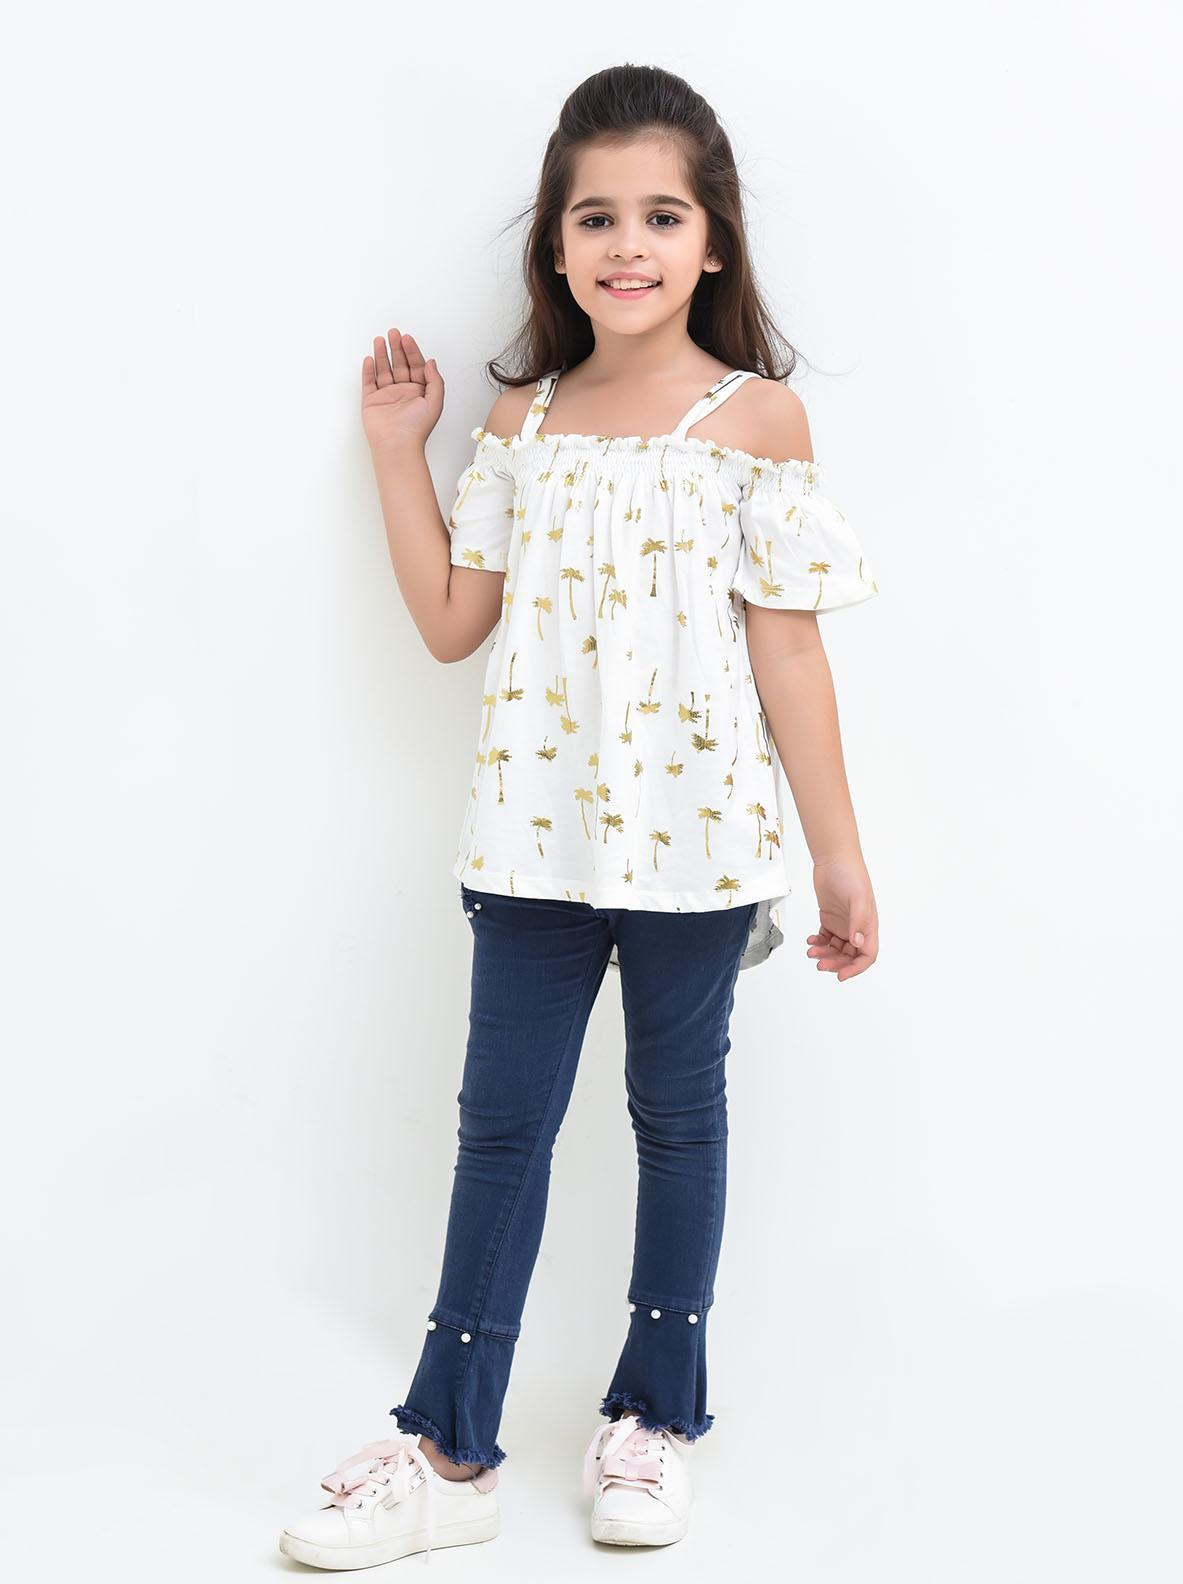 Ochre Cotton Printed Top for Girls -  OGK 52 Off White